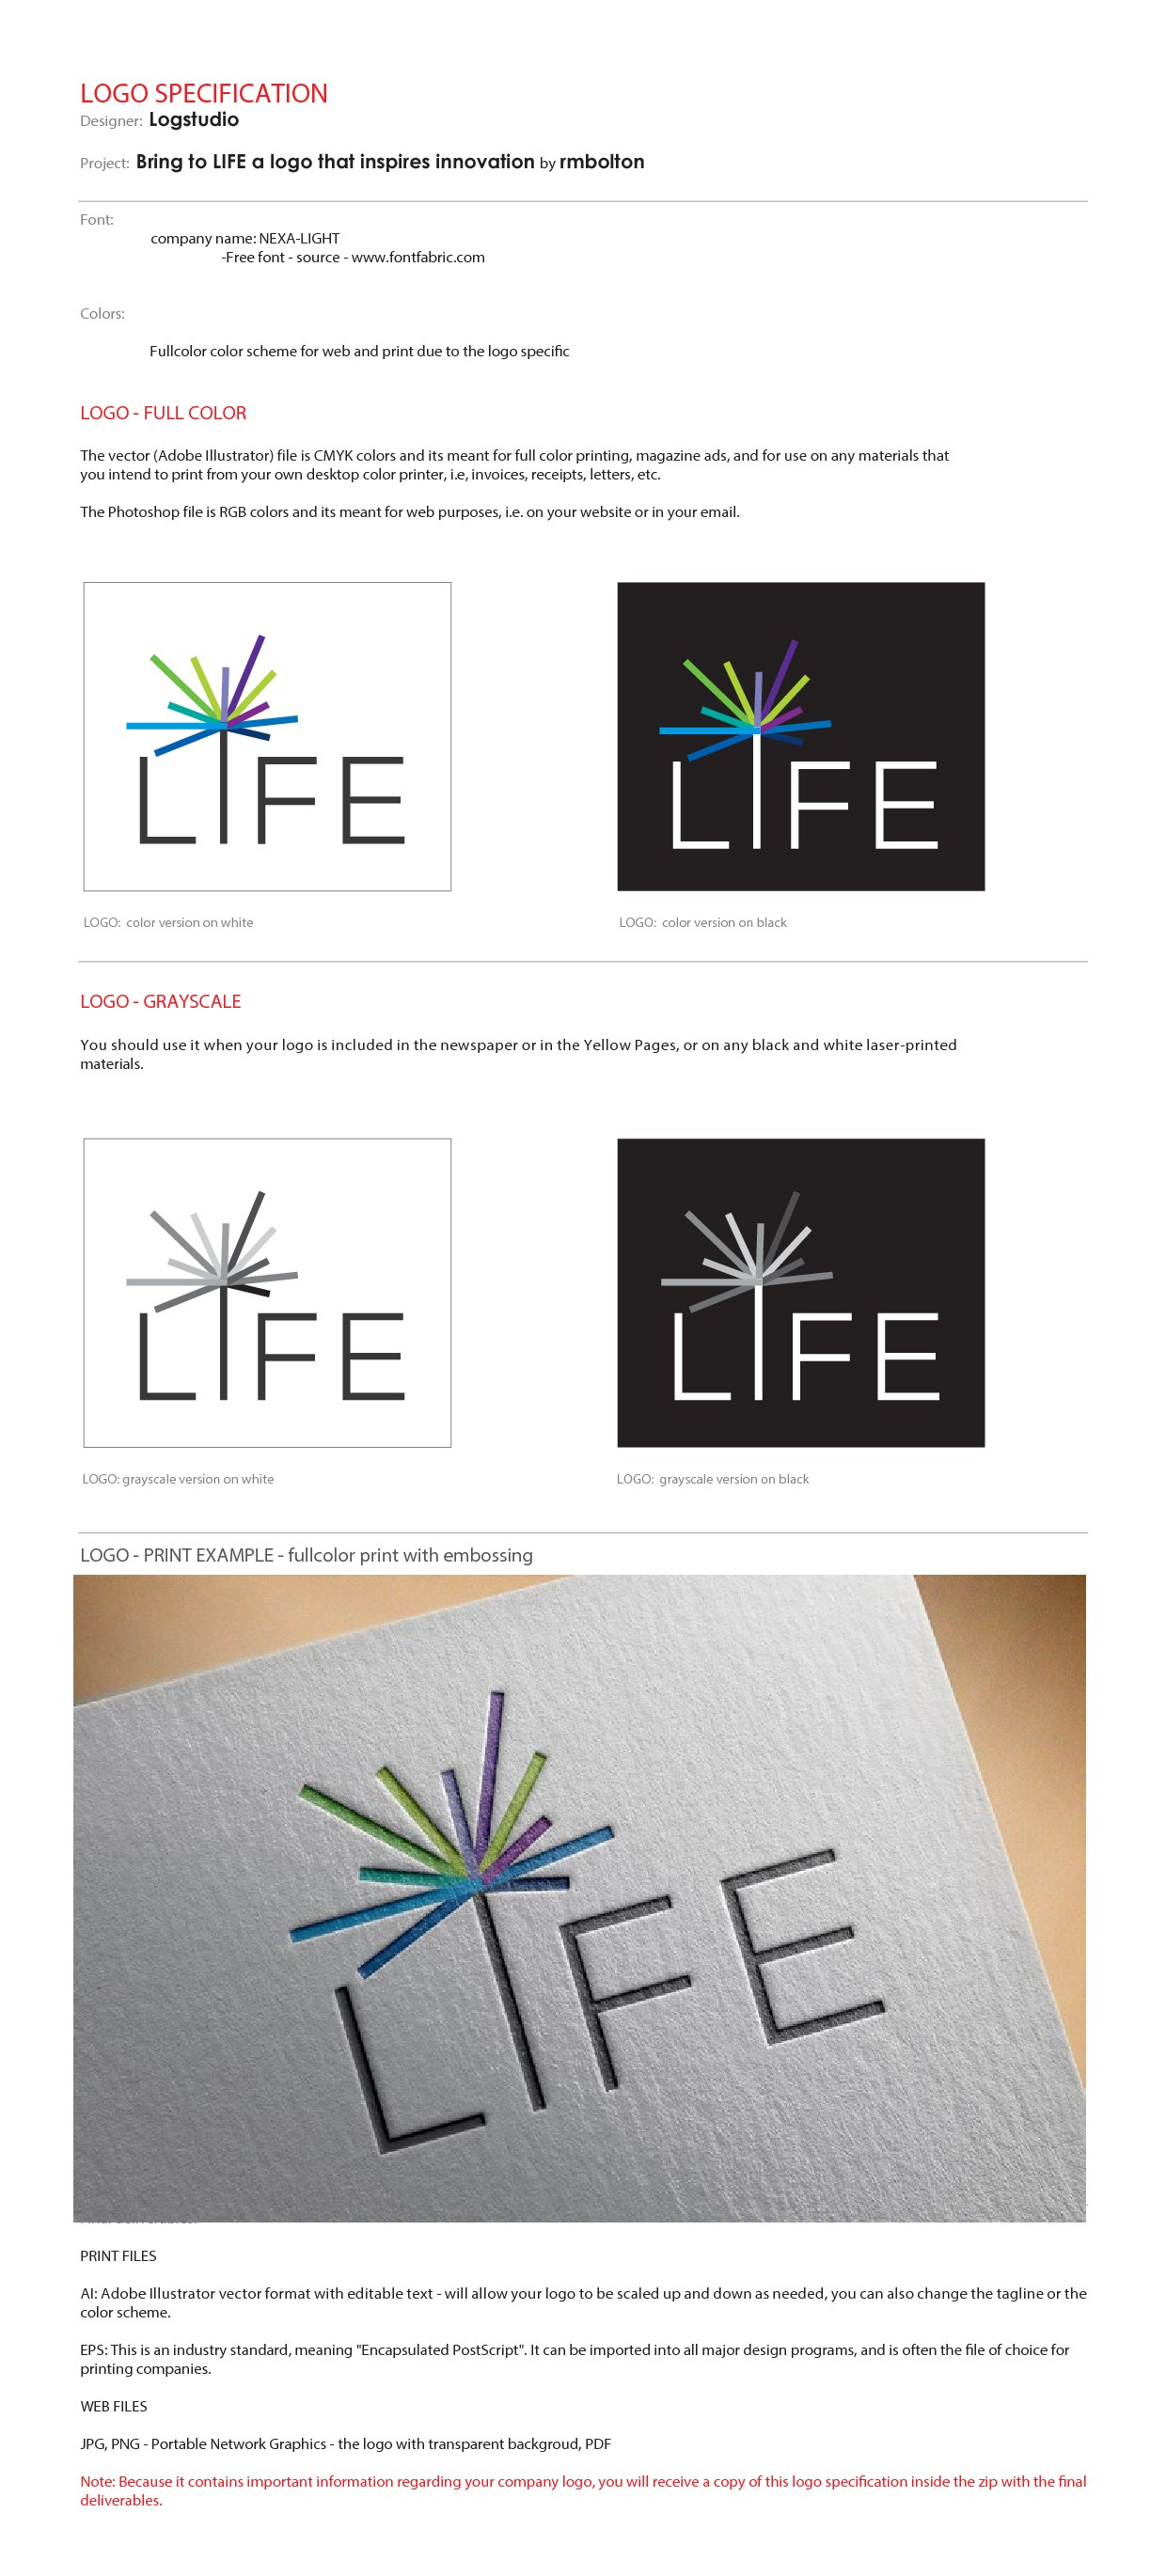 Bring to LIFE a logo that inspires innovation